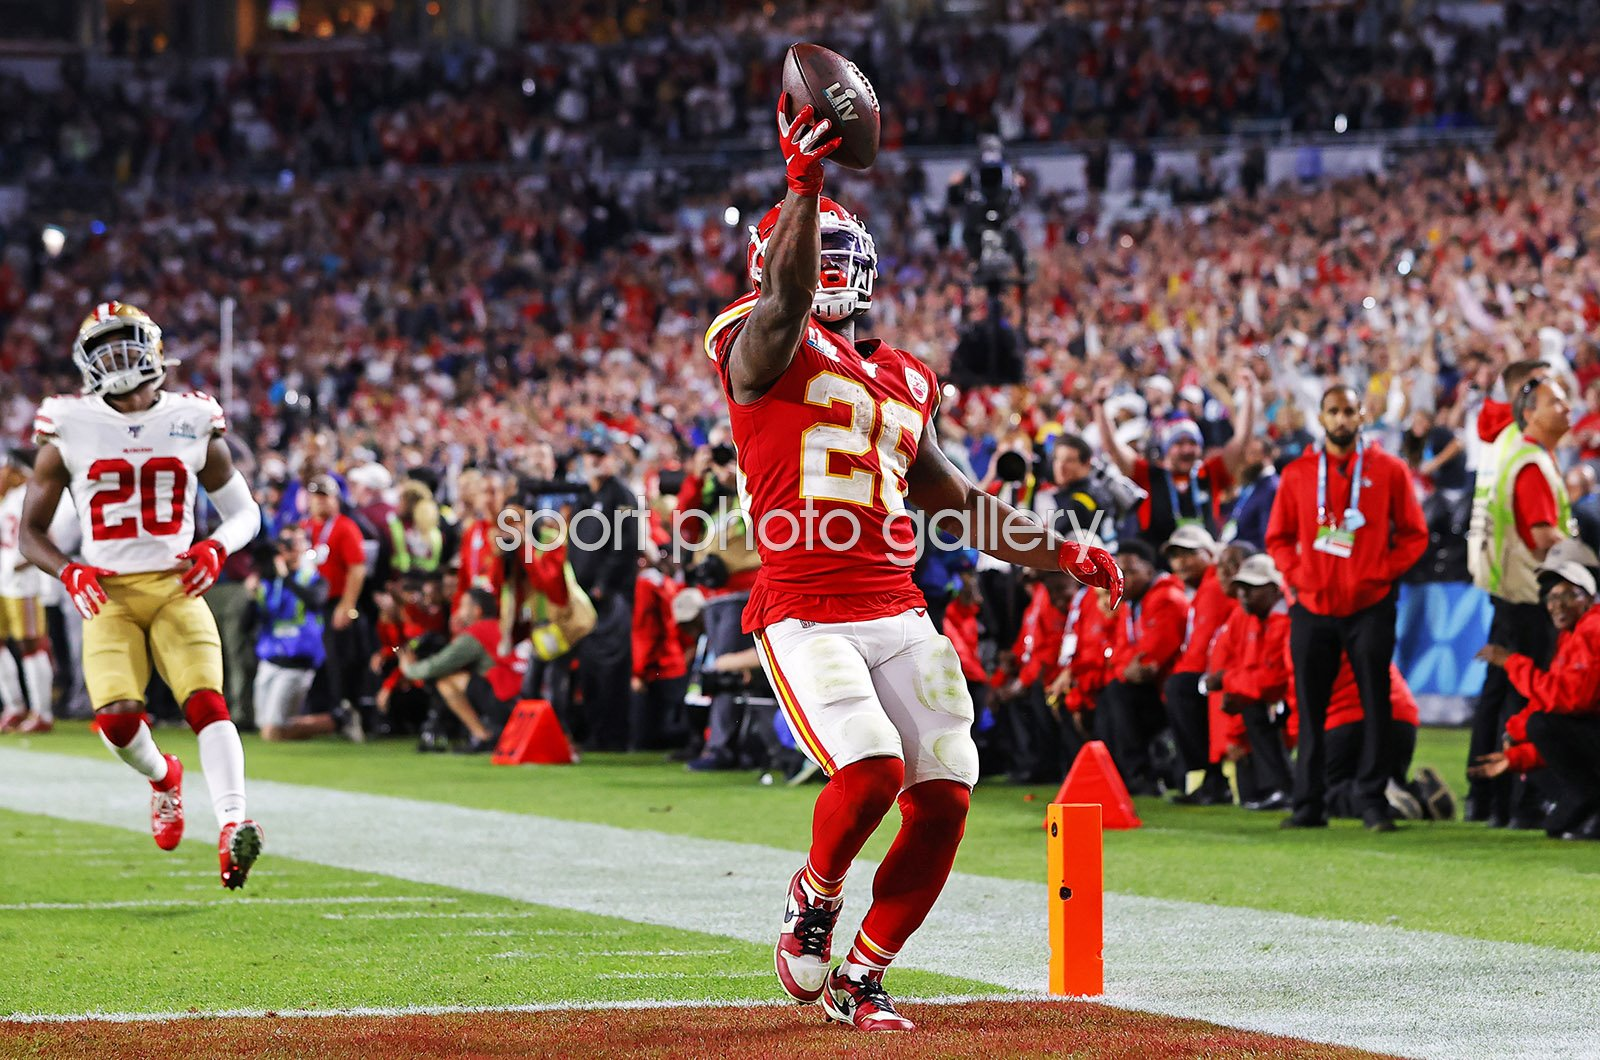 Damien Williams Kansas City Fourth Quarter Touchdown Super Bowl Miami 2020